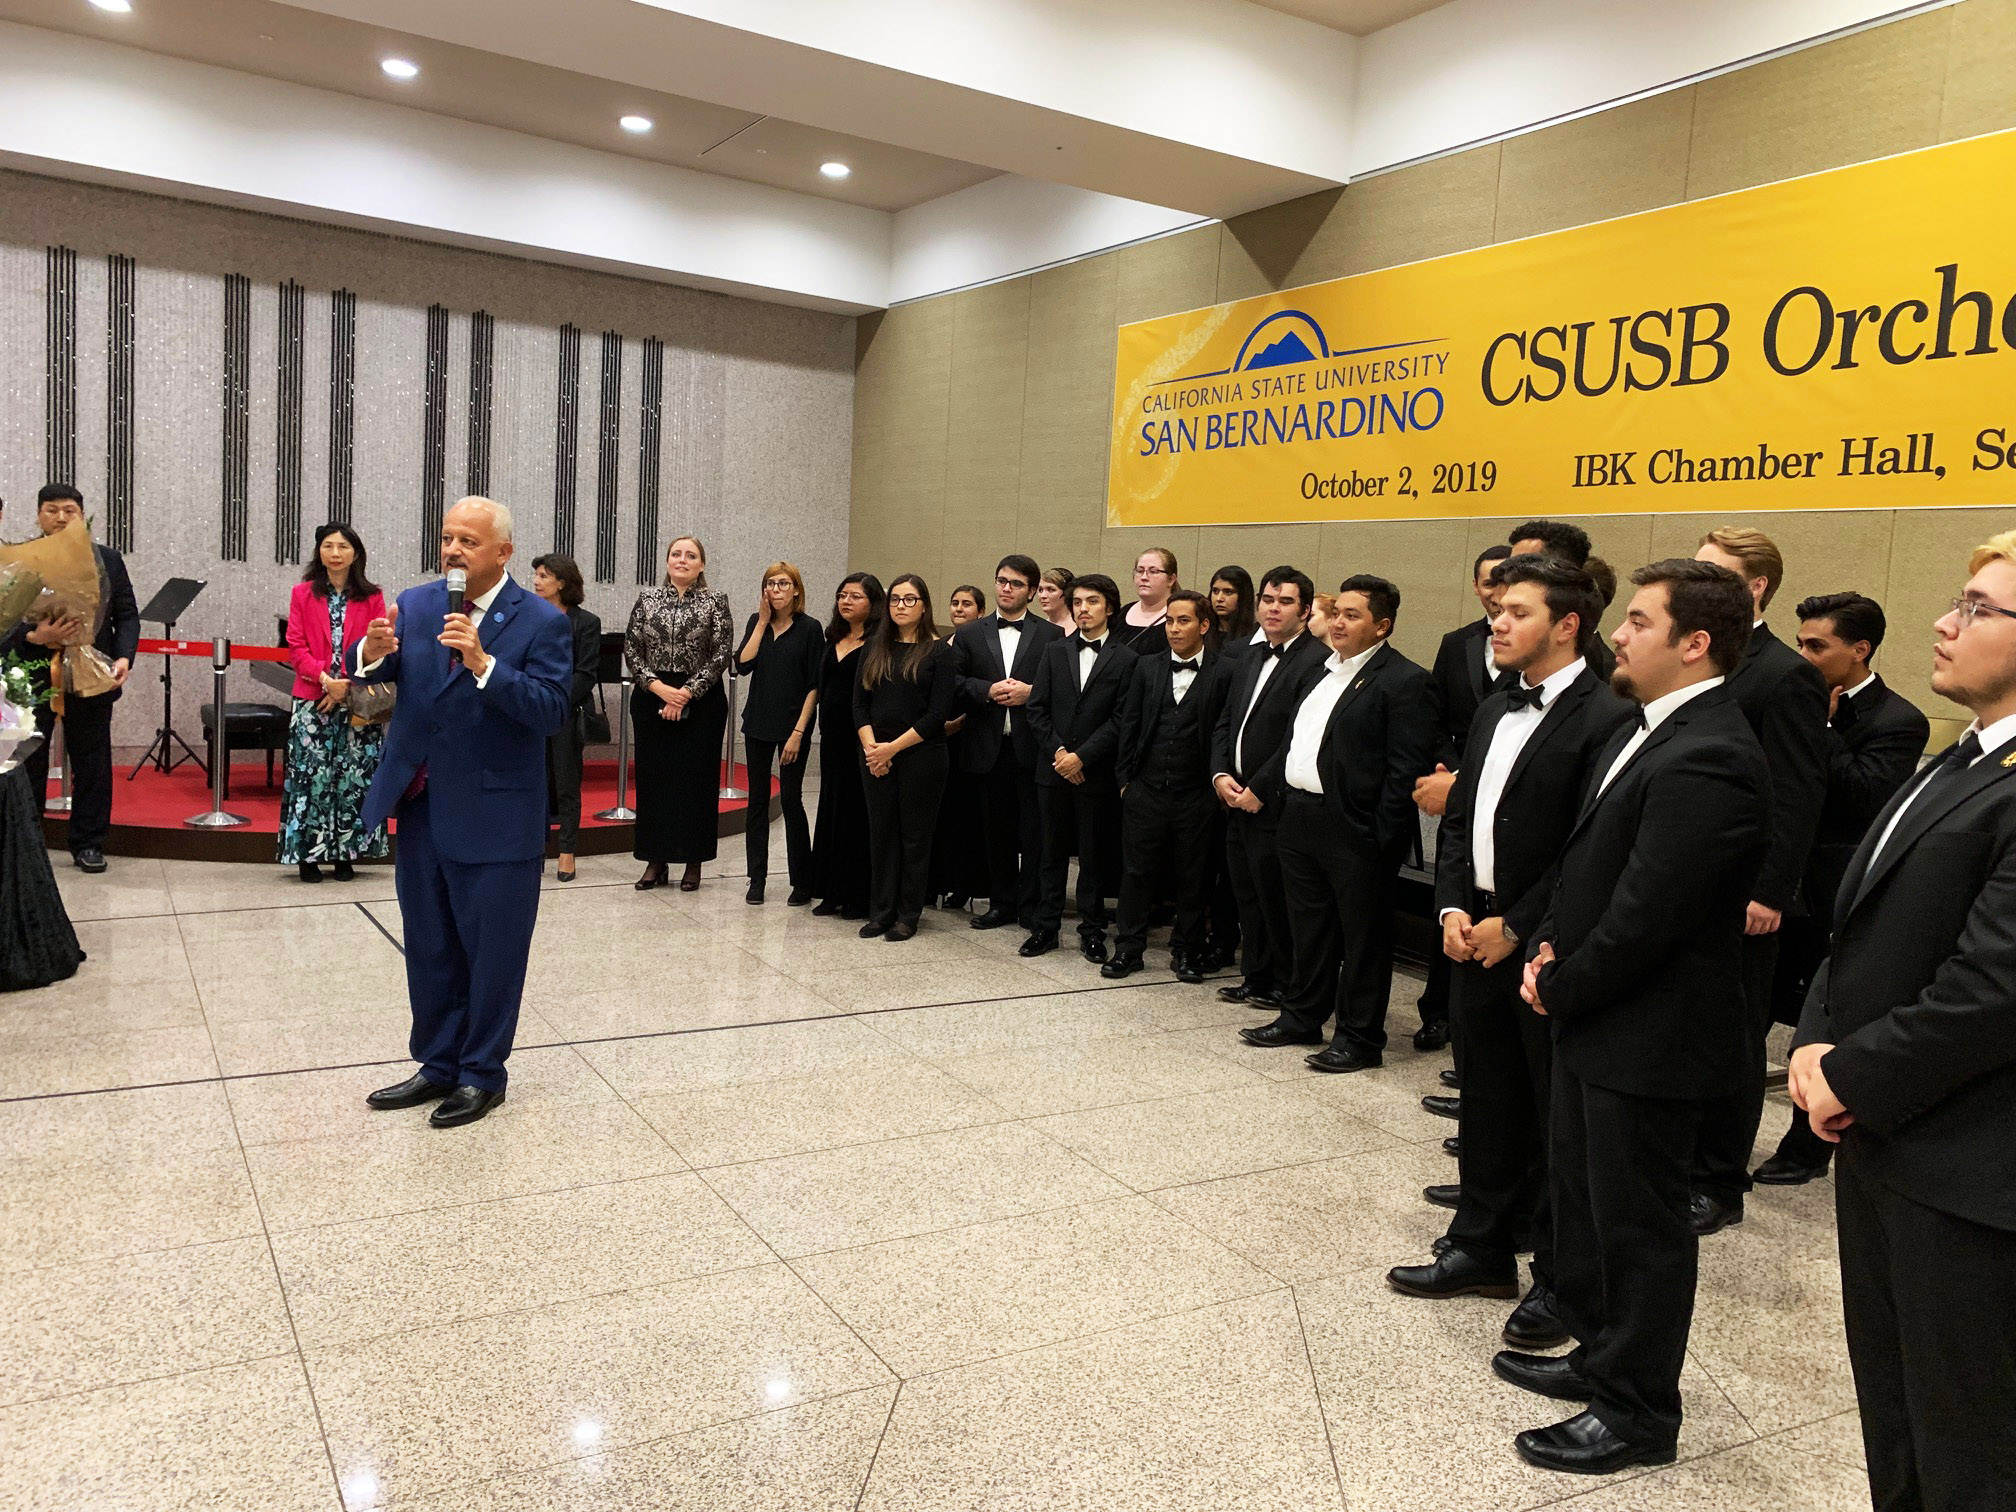 CSUSB President Tomás D. Morales speaking at the CSUSB Orchestra Concert